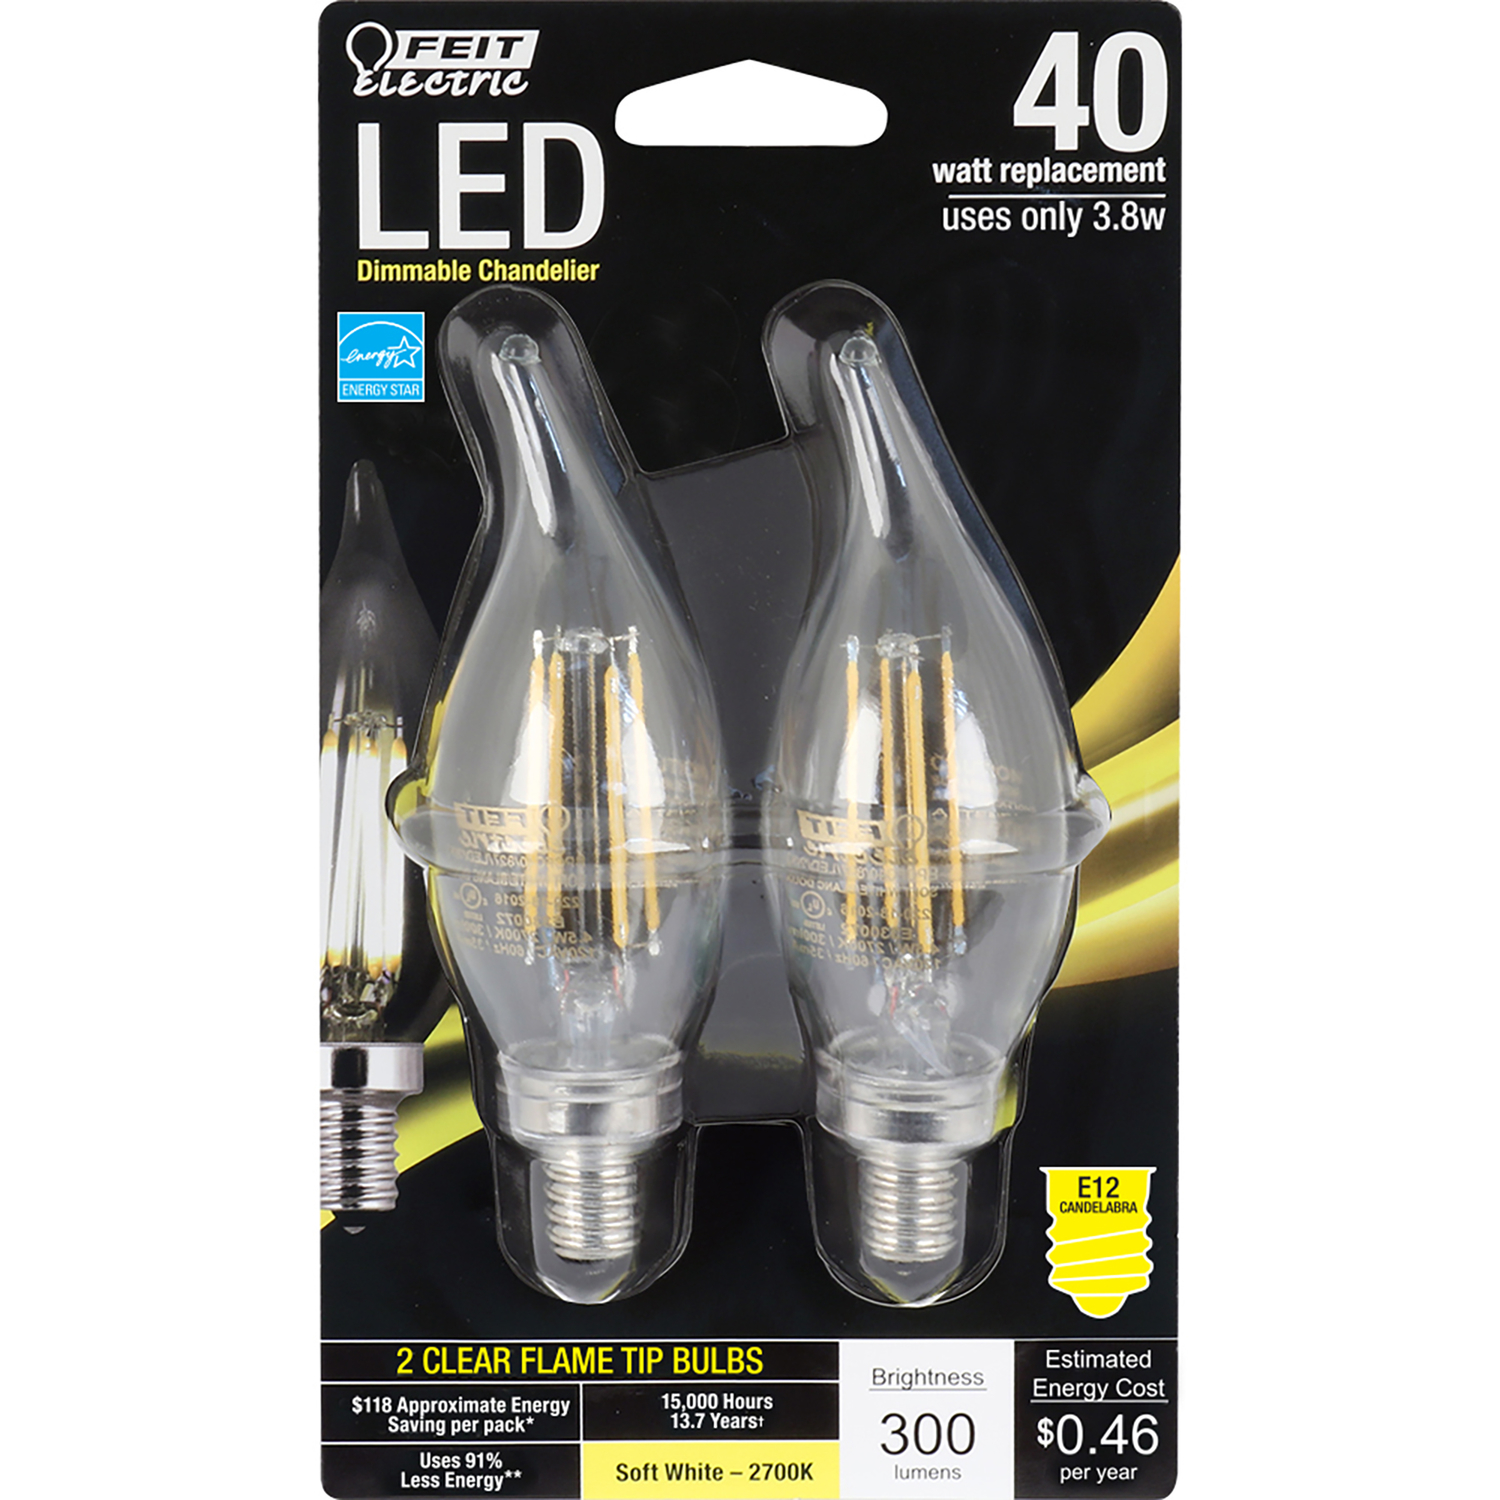 40 Watt In Lumen Feit Electric 4 5 Watts C10 Led Bulb 300 Lumens Chandelier 40 Watt